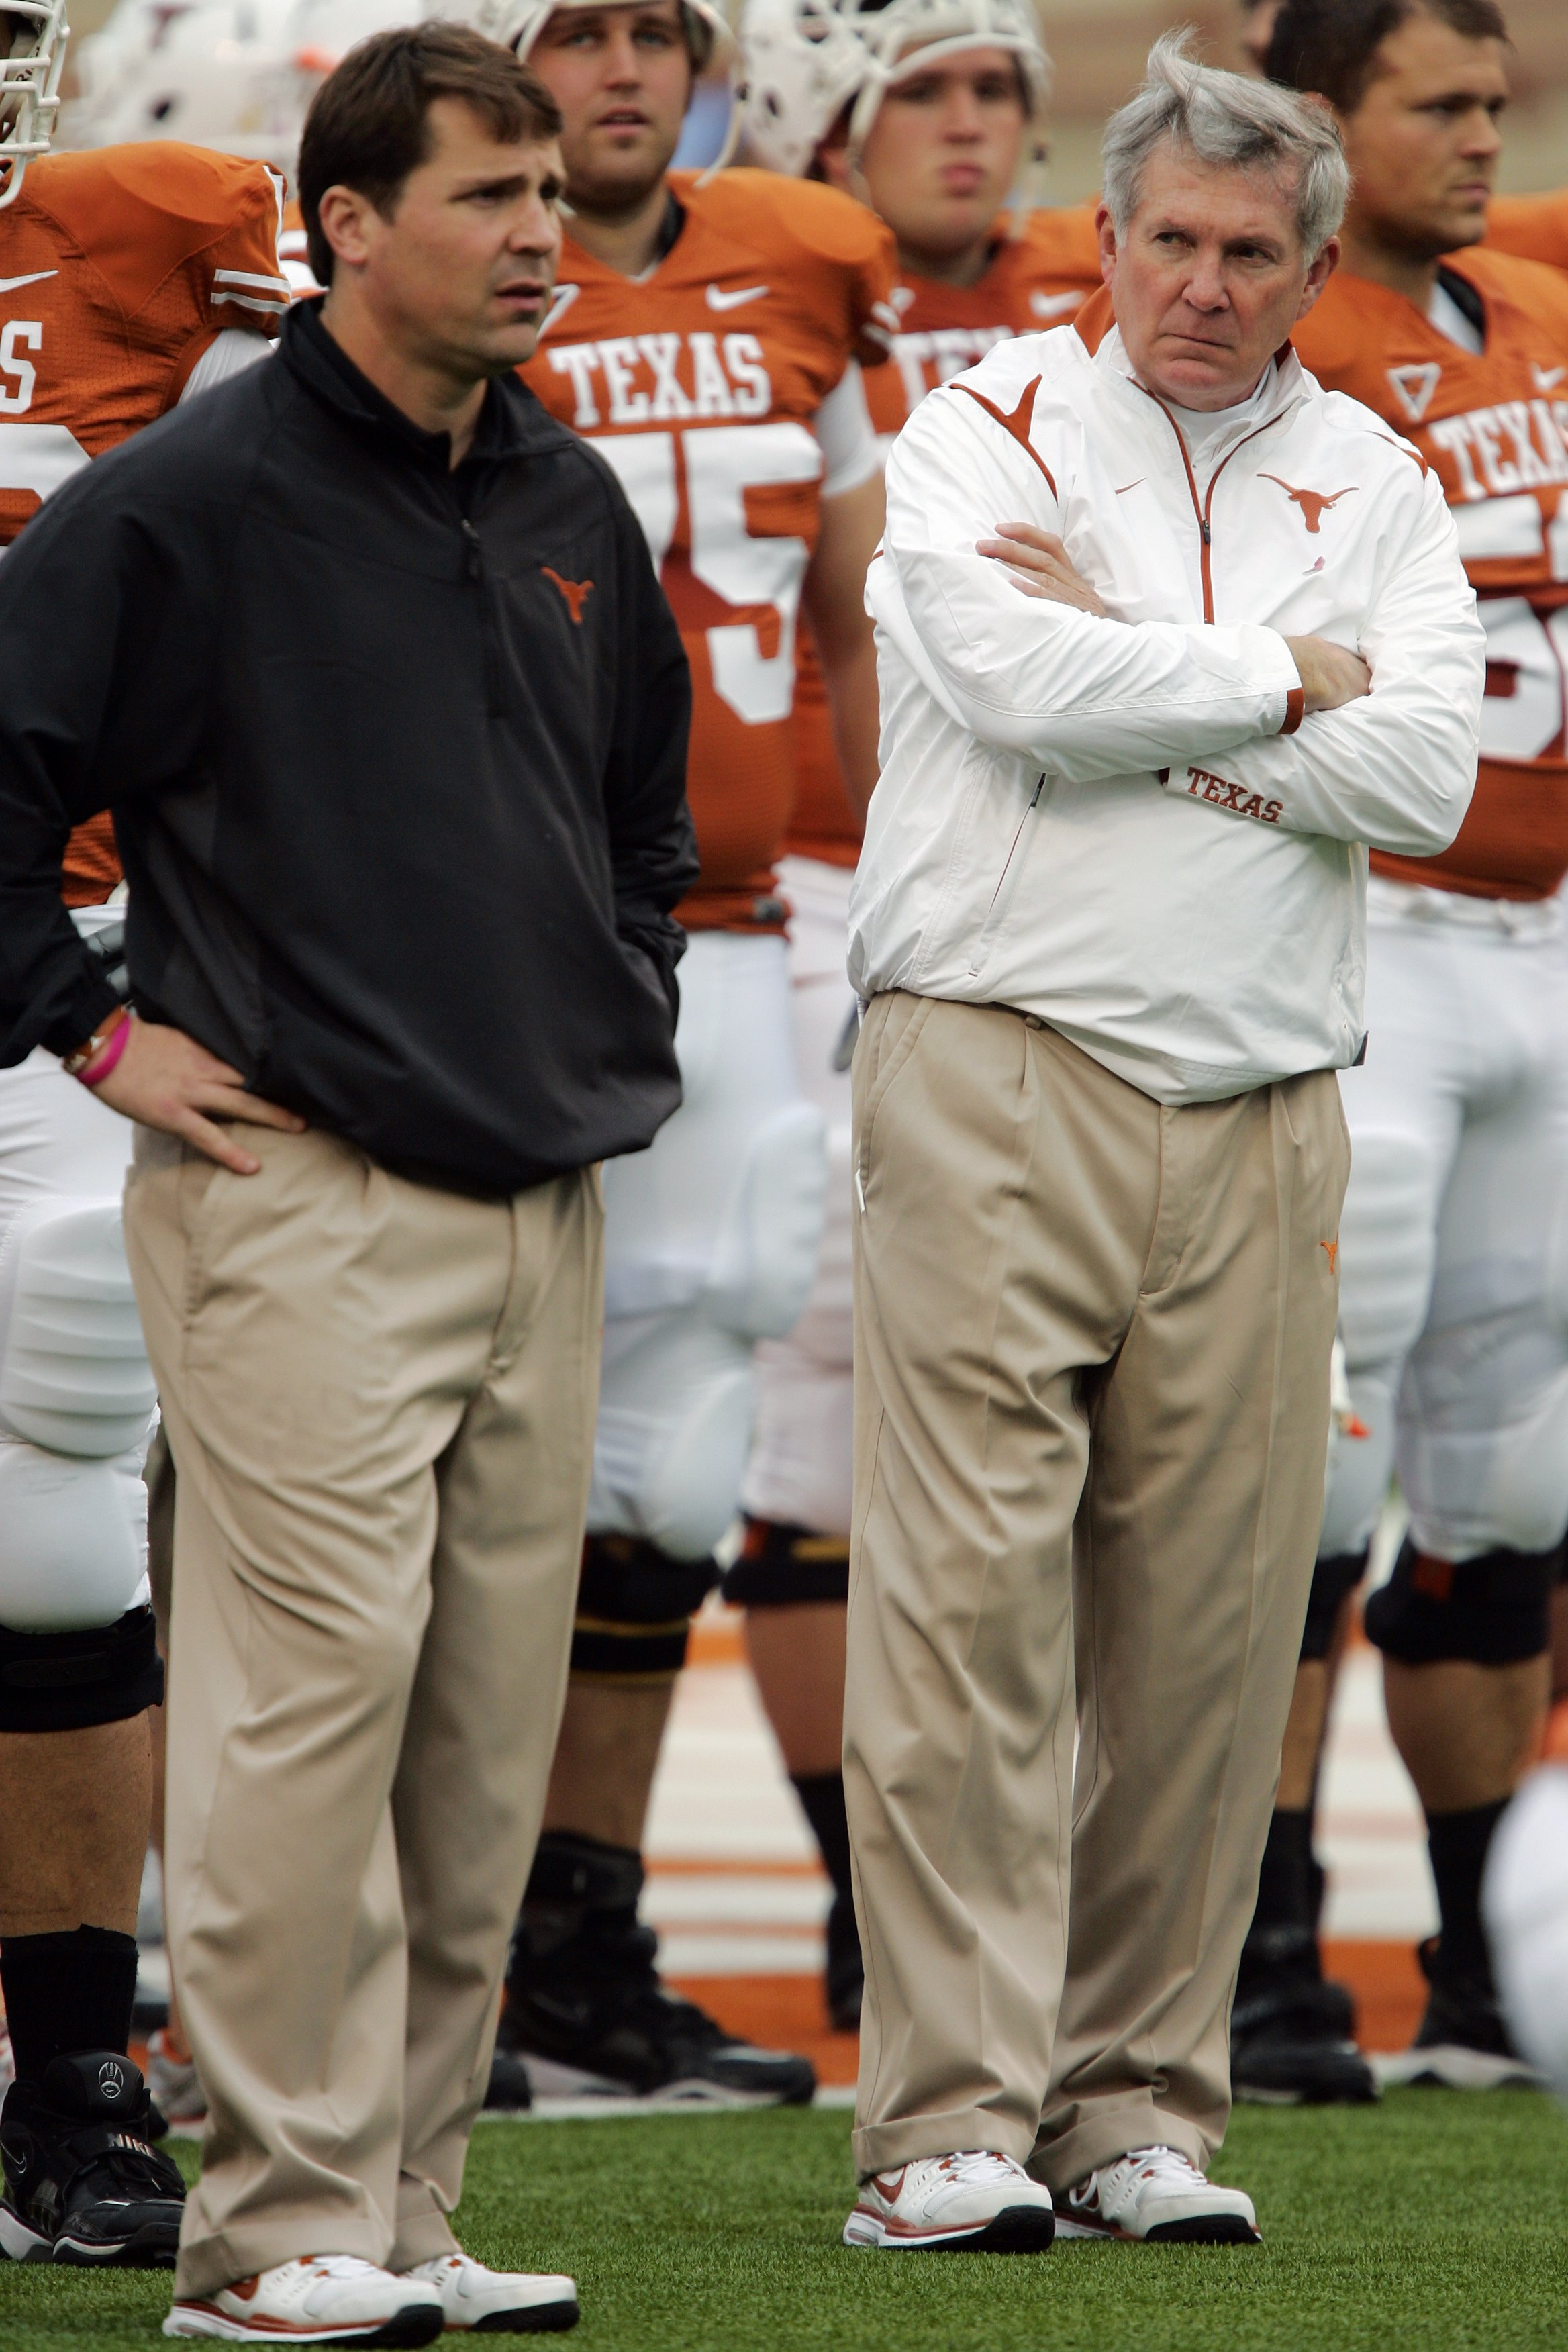 AUSTIN, TX - OCTOBER 10:  Defensive coordinator Will Muschamp and head coach Mack Brown of the Texas Longhorns lead their team in pregame drills before playing the Colorado Buffaloes  on October 10, 2009 at Darrell K Royal-Texas Memorial Stadium in Austin